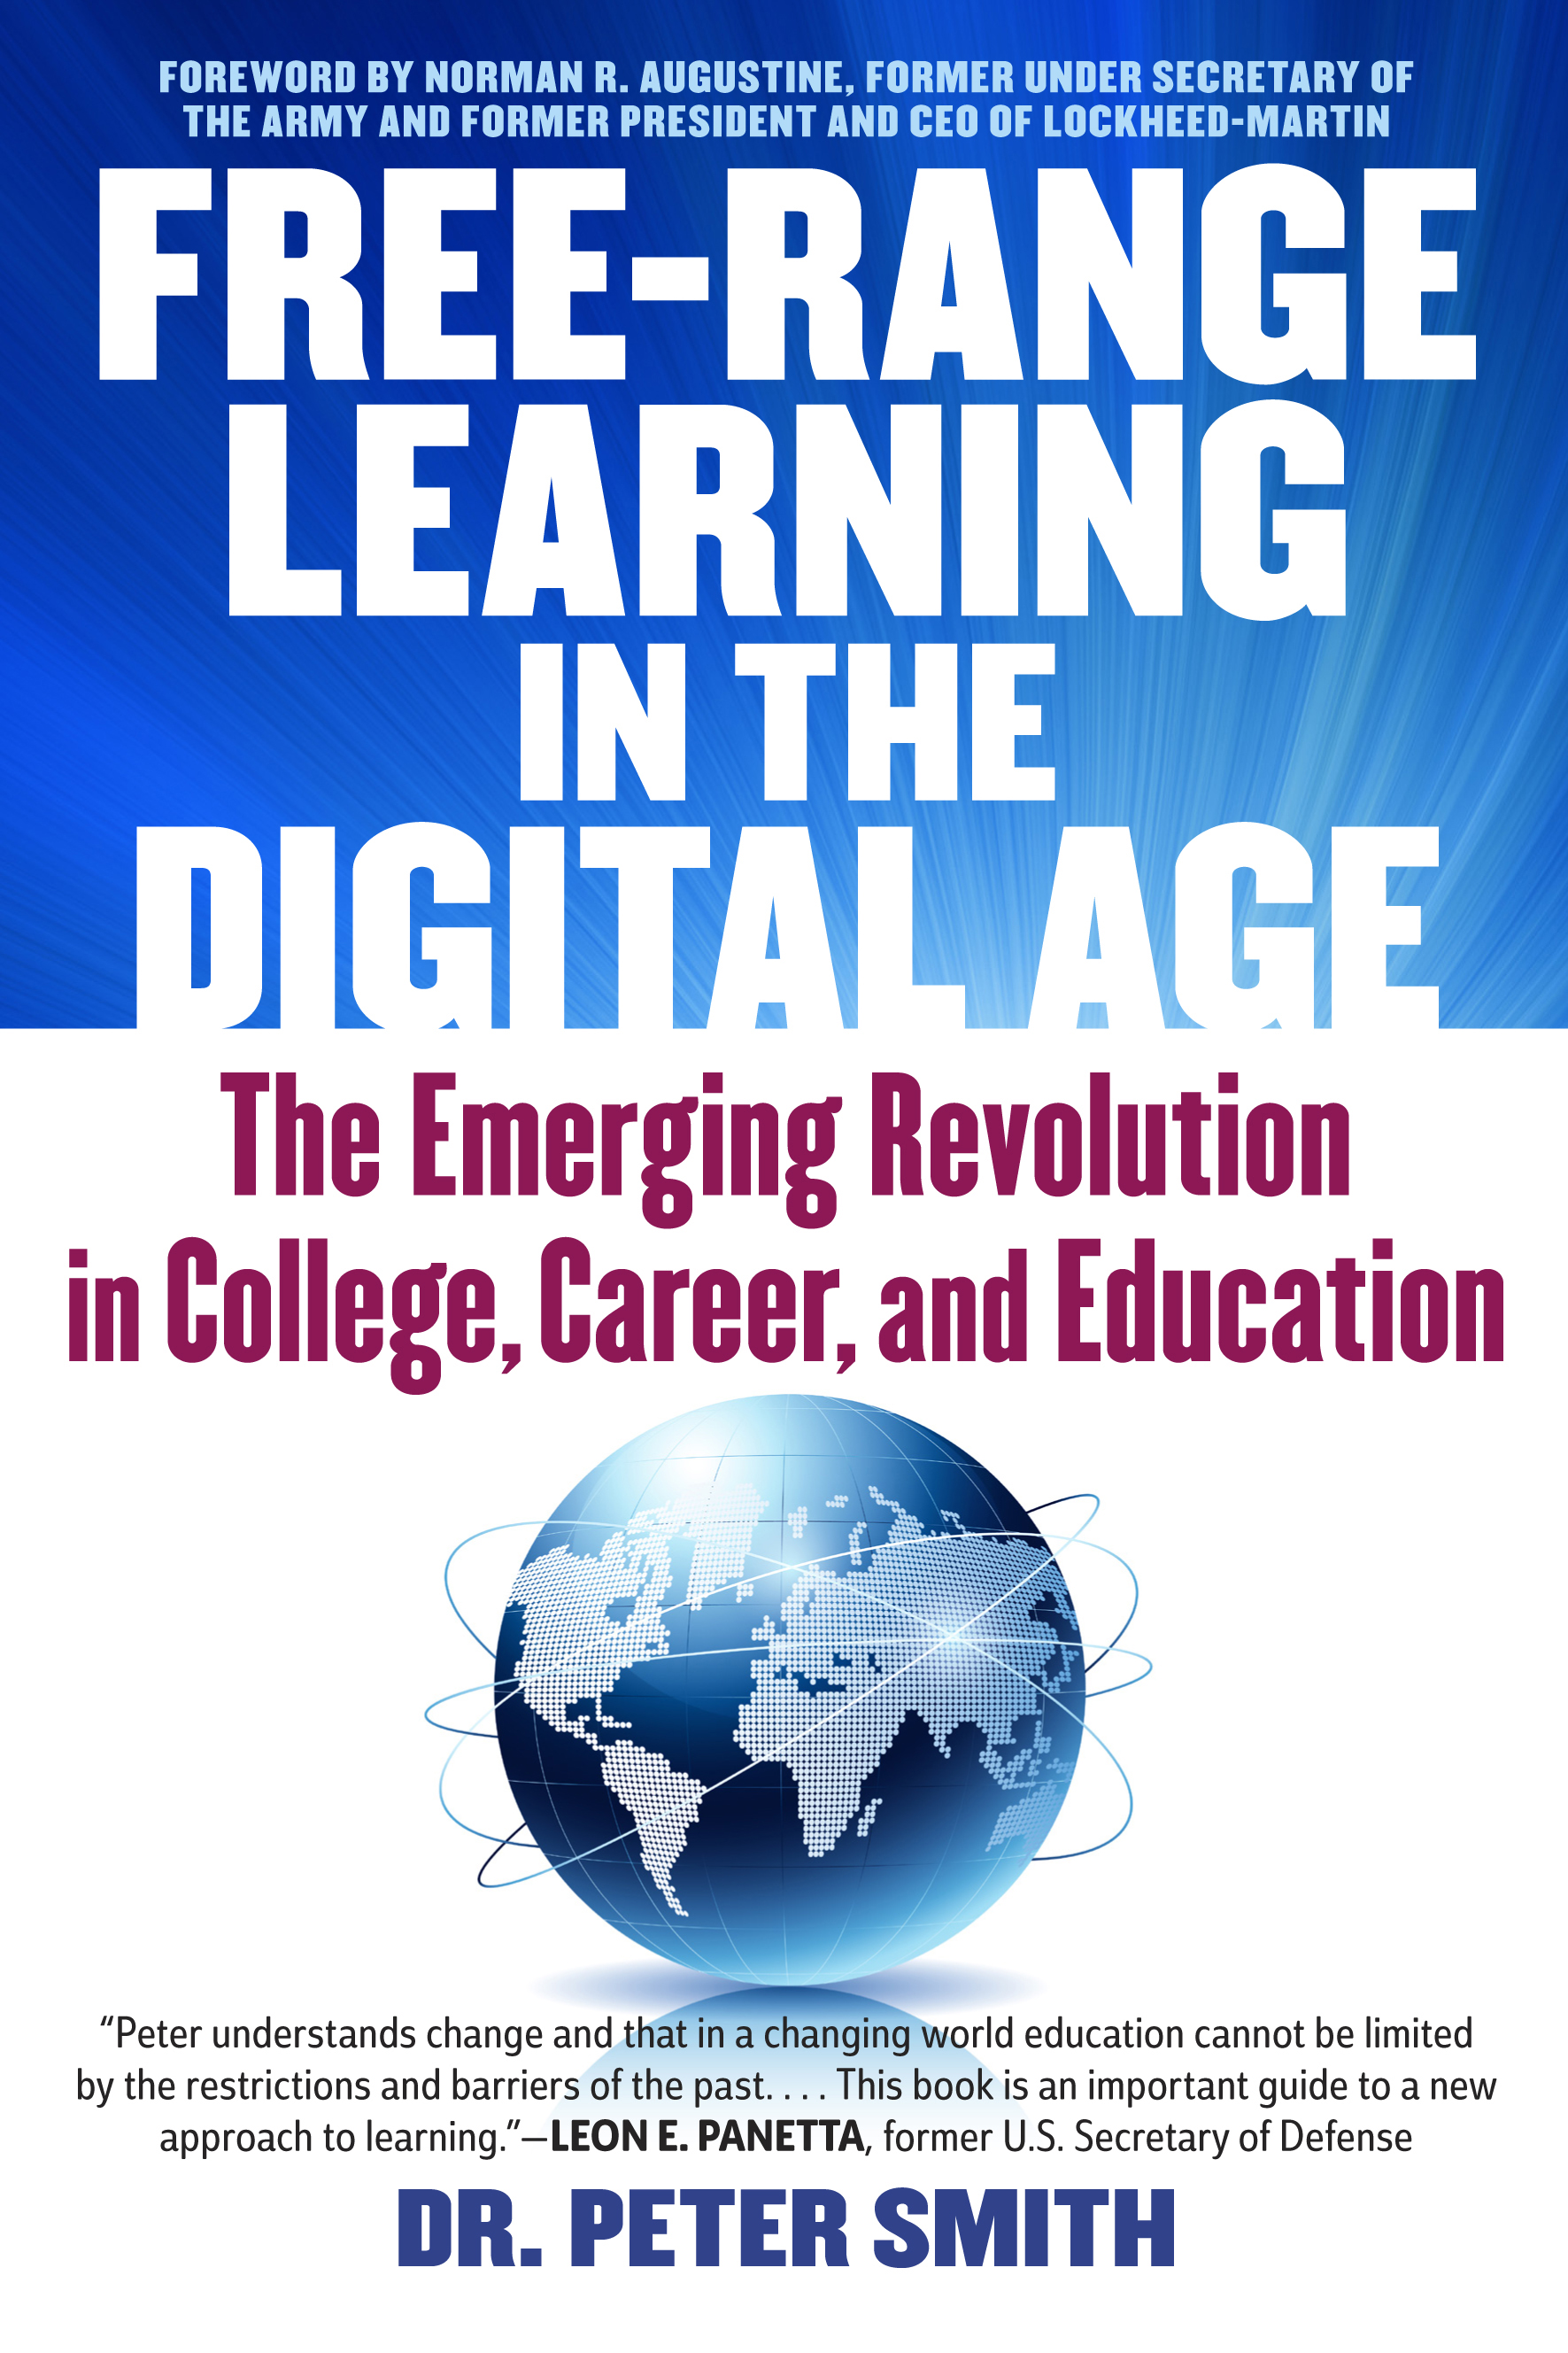 books for thinking deeply about online and digital learning